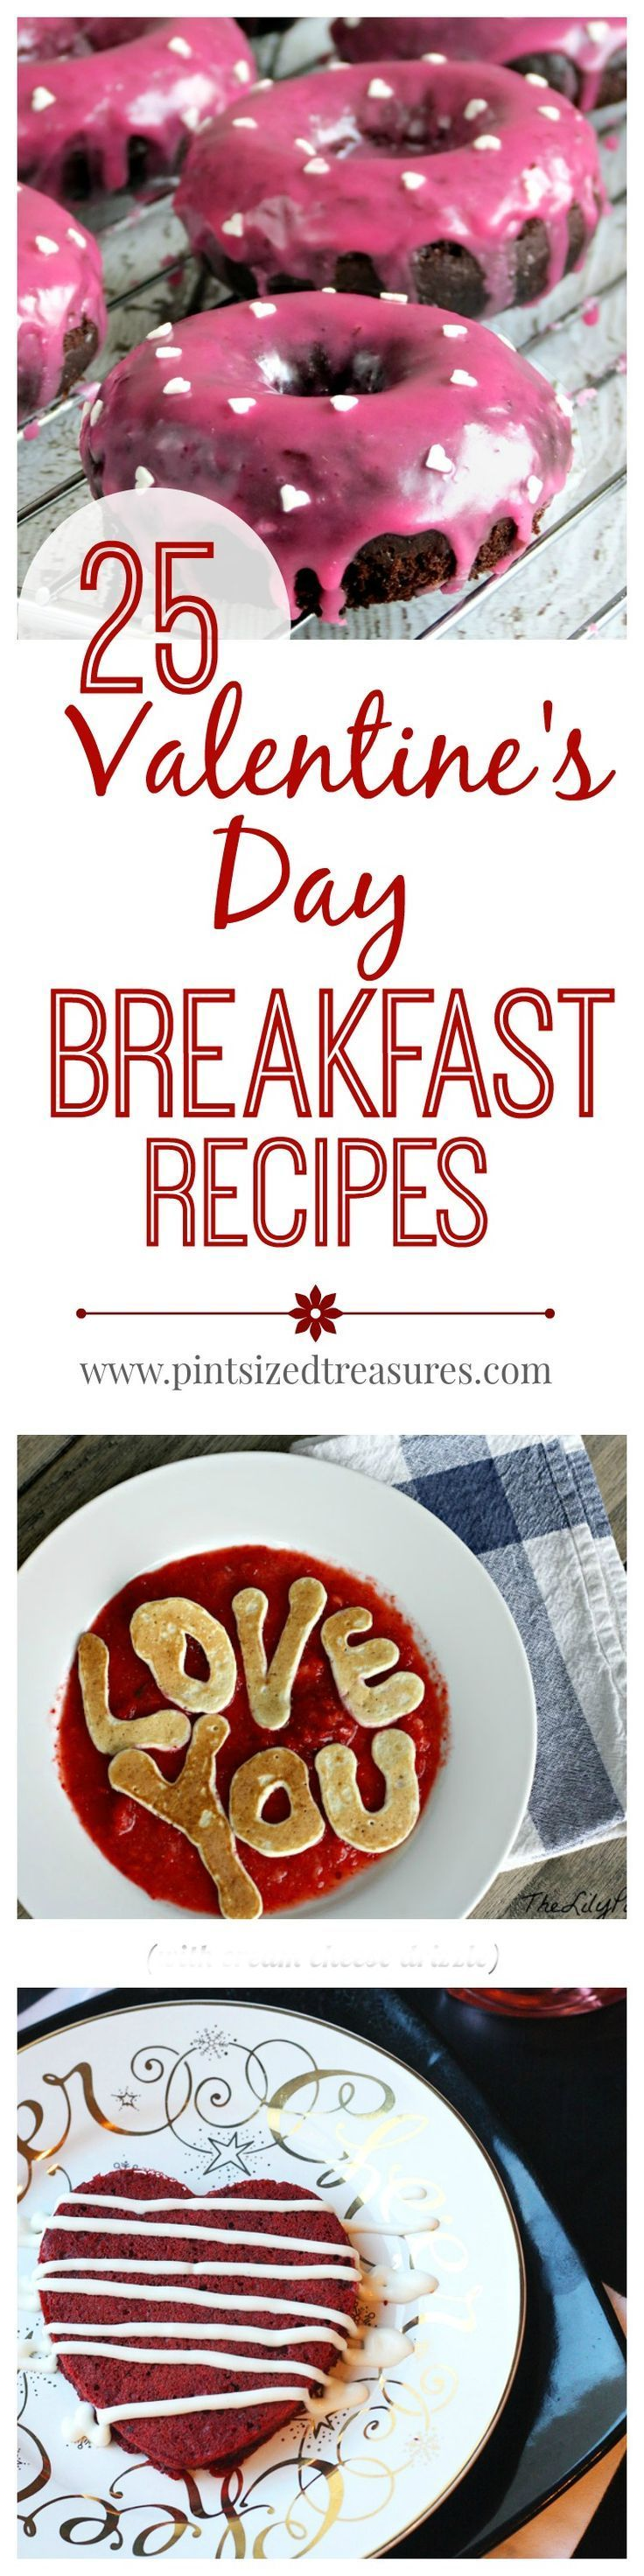 Looking for the perfect Valentine's Day Breakfast recipe? How about 25? These out these breakfast ideas that will make this Valentine's Day the BEST ever!